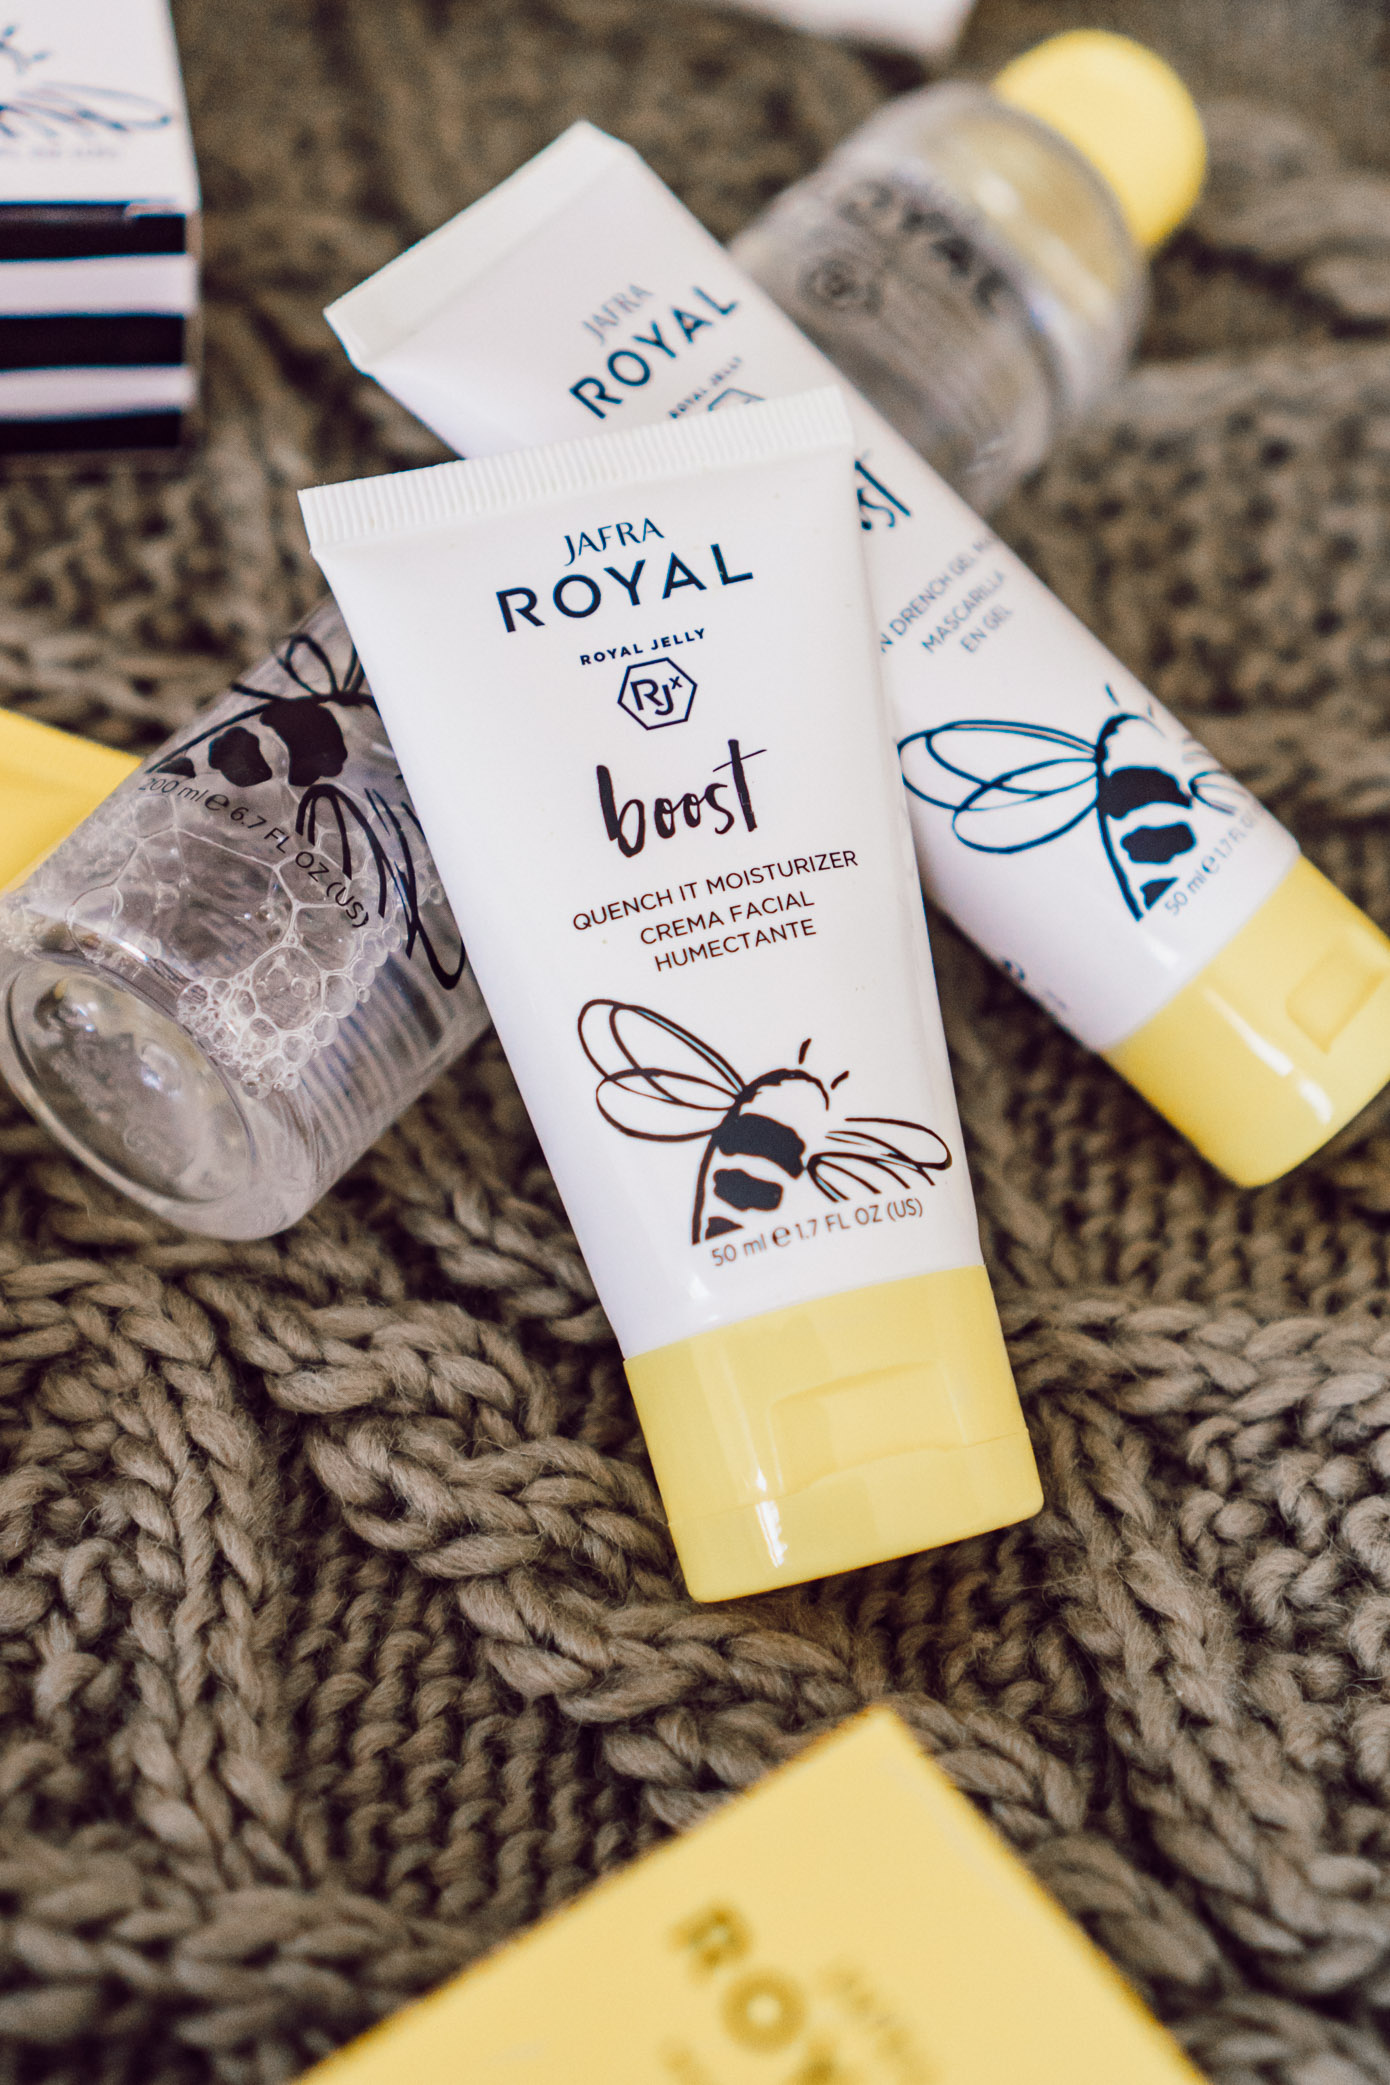 Affordable Skincare Line for Dry/Sensitive Skin, Affordable Skincare Line for Normal/Combination Skin | Affordable Skincare Line I'm Loving featured on Louella Reese Blog